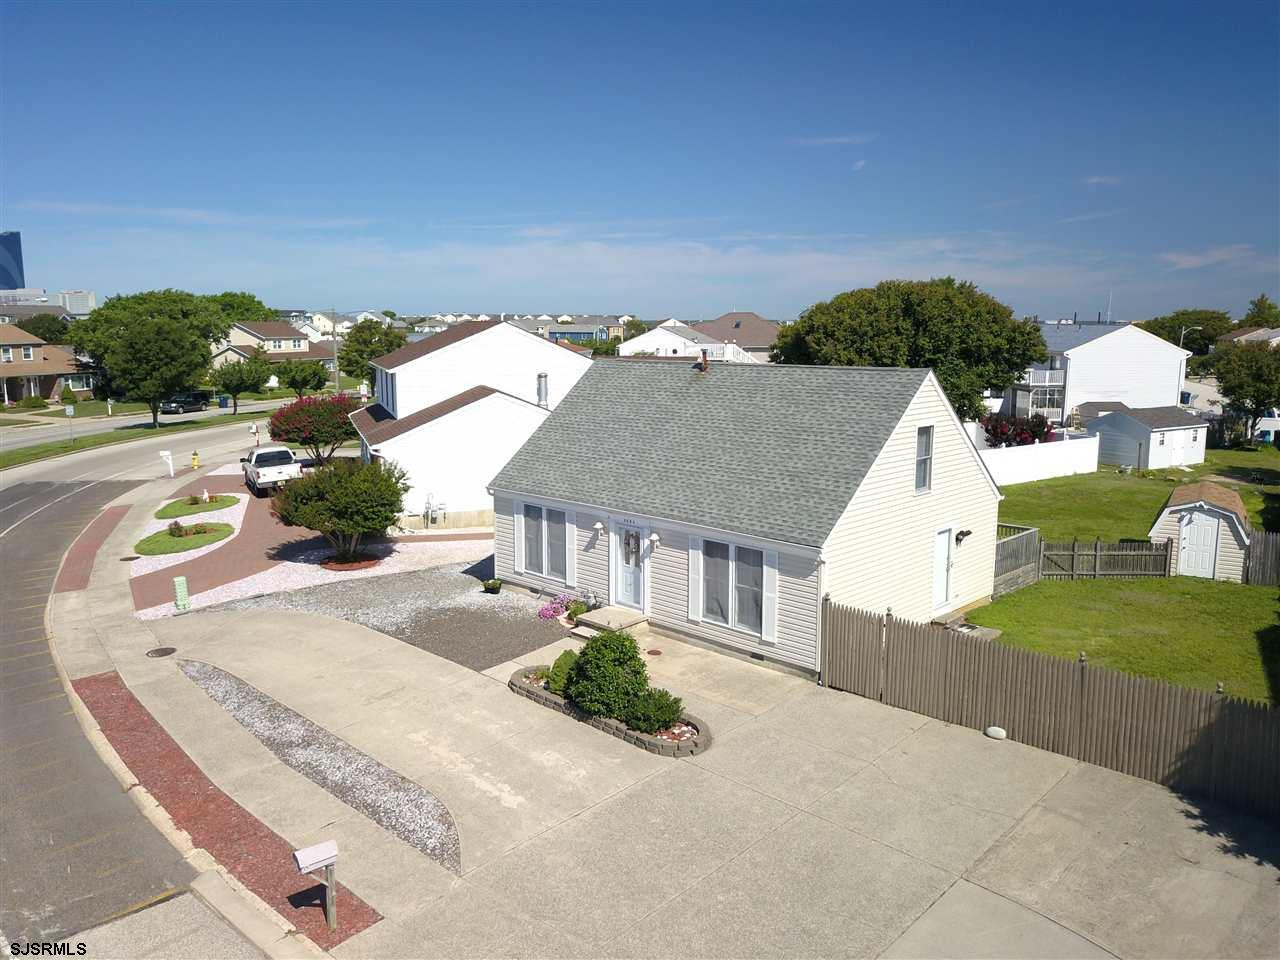 5203 Harbour Beach Blvd, Brigantine, NJ 08203